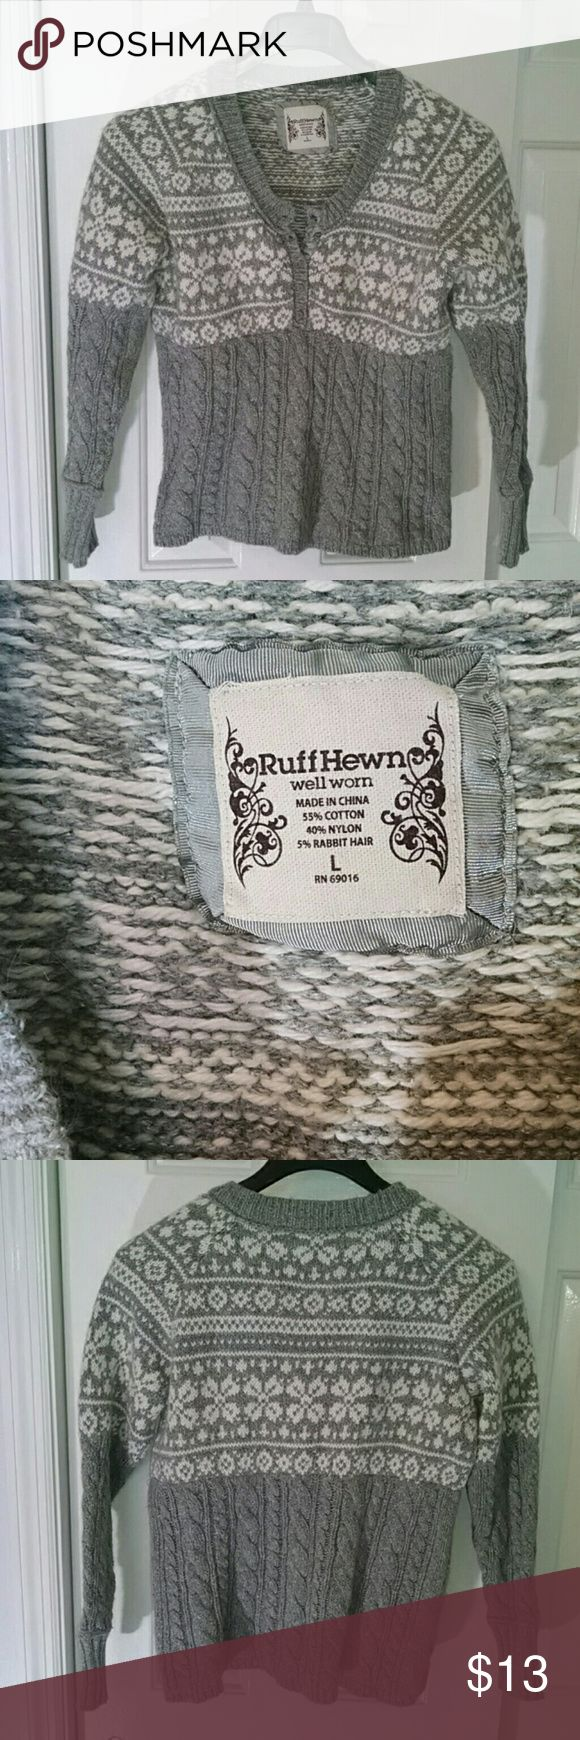 Ruff Hewn Light Gray w/ White button sweater Ruff hewn light grey and white sweater cable Stitch on Lower portion and arms. 6 buttons from chest to neck line. Blend of cotton nylon and rabbit hair. Ruff Hewn Sweaters Crew & Scoop Necks